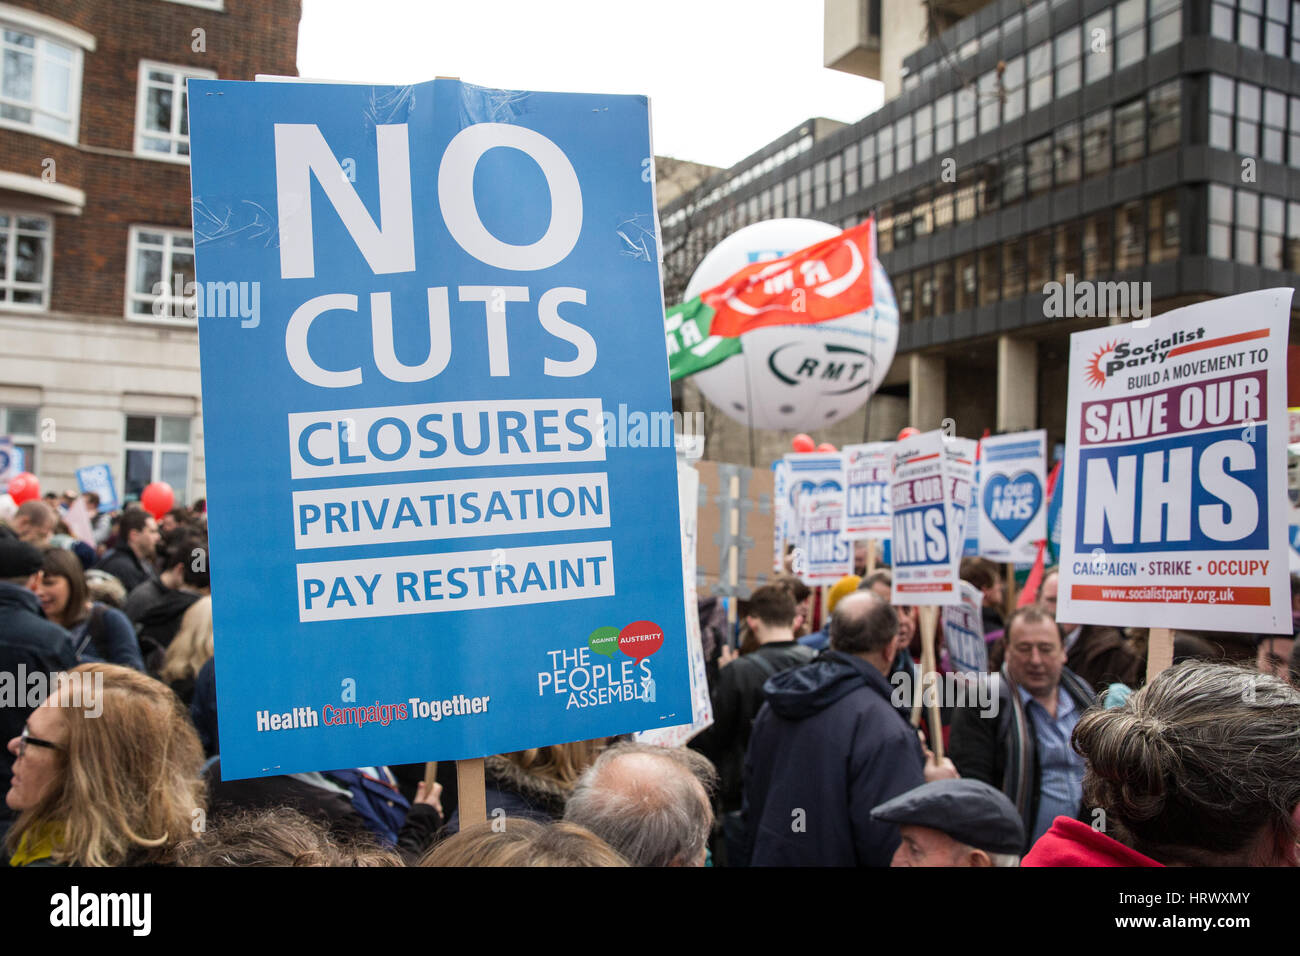 London, UK. 4th March, 2017. Supporters of the NHS take part in the It's Our NHS national demonstration in support - Stock Image